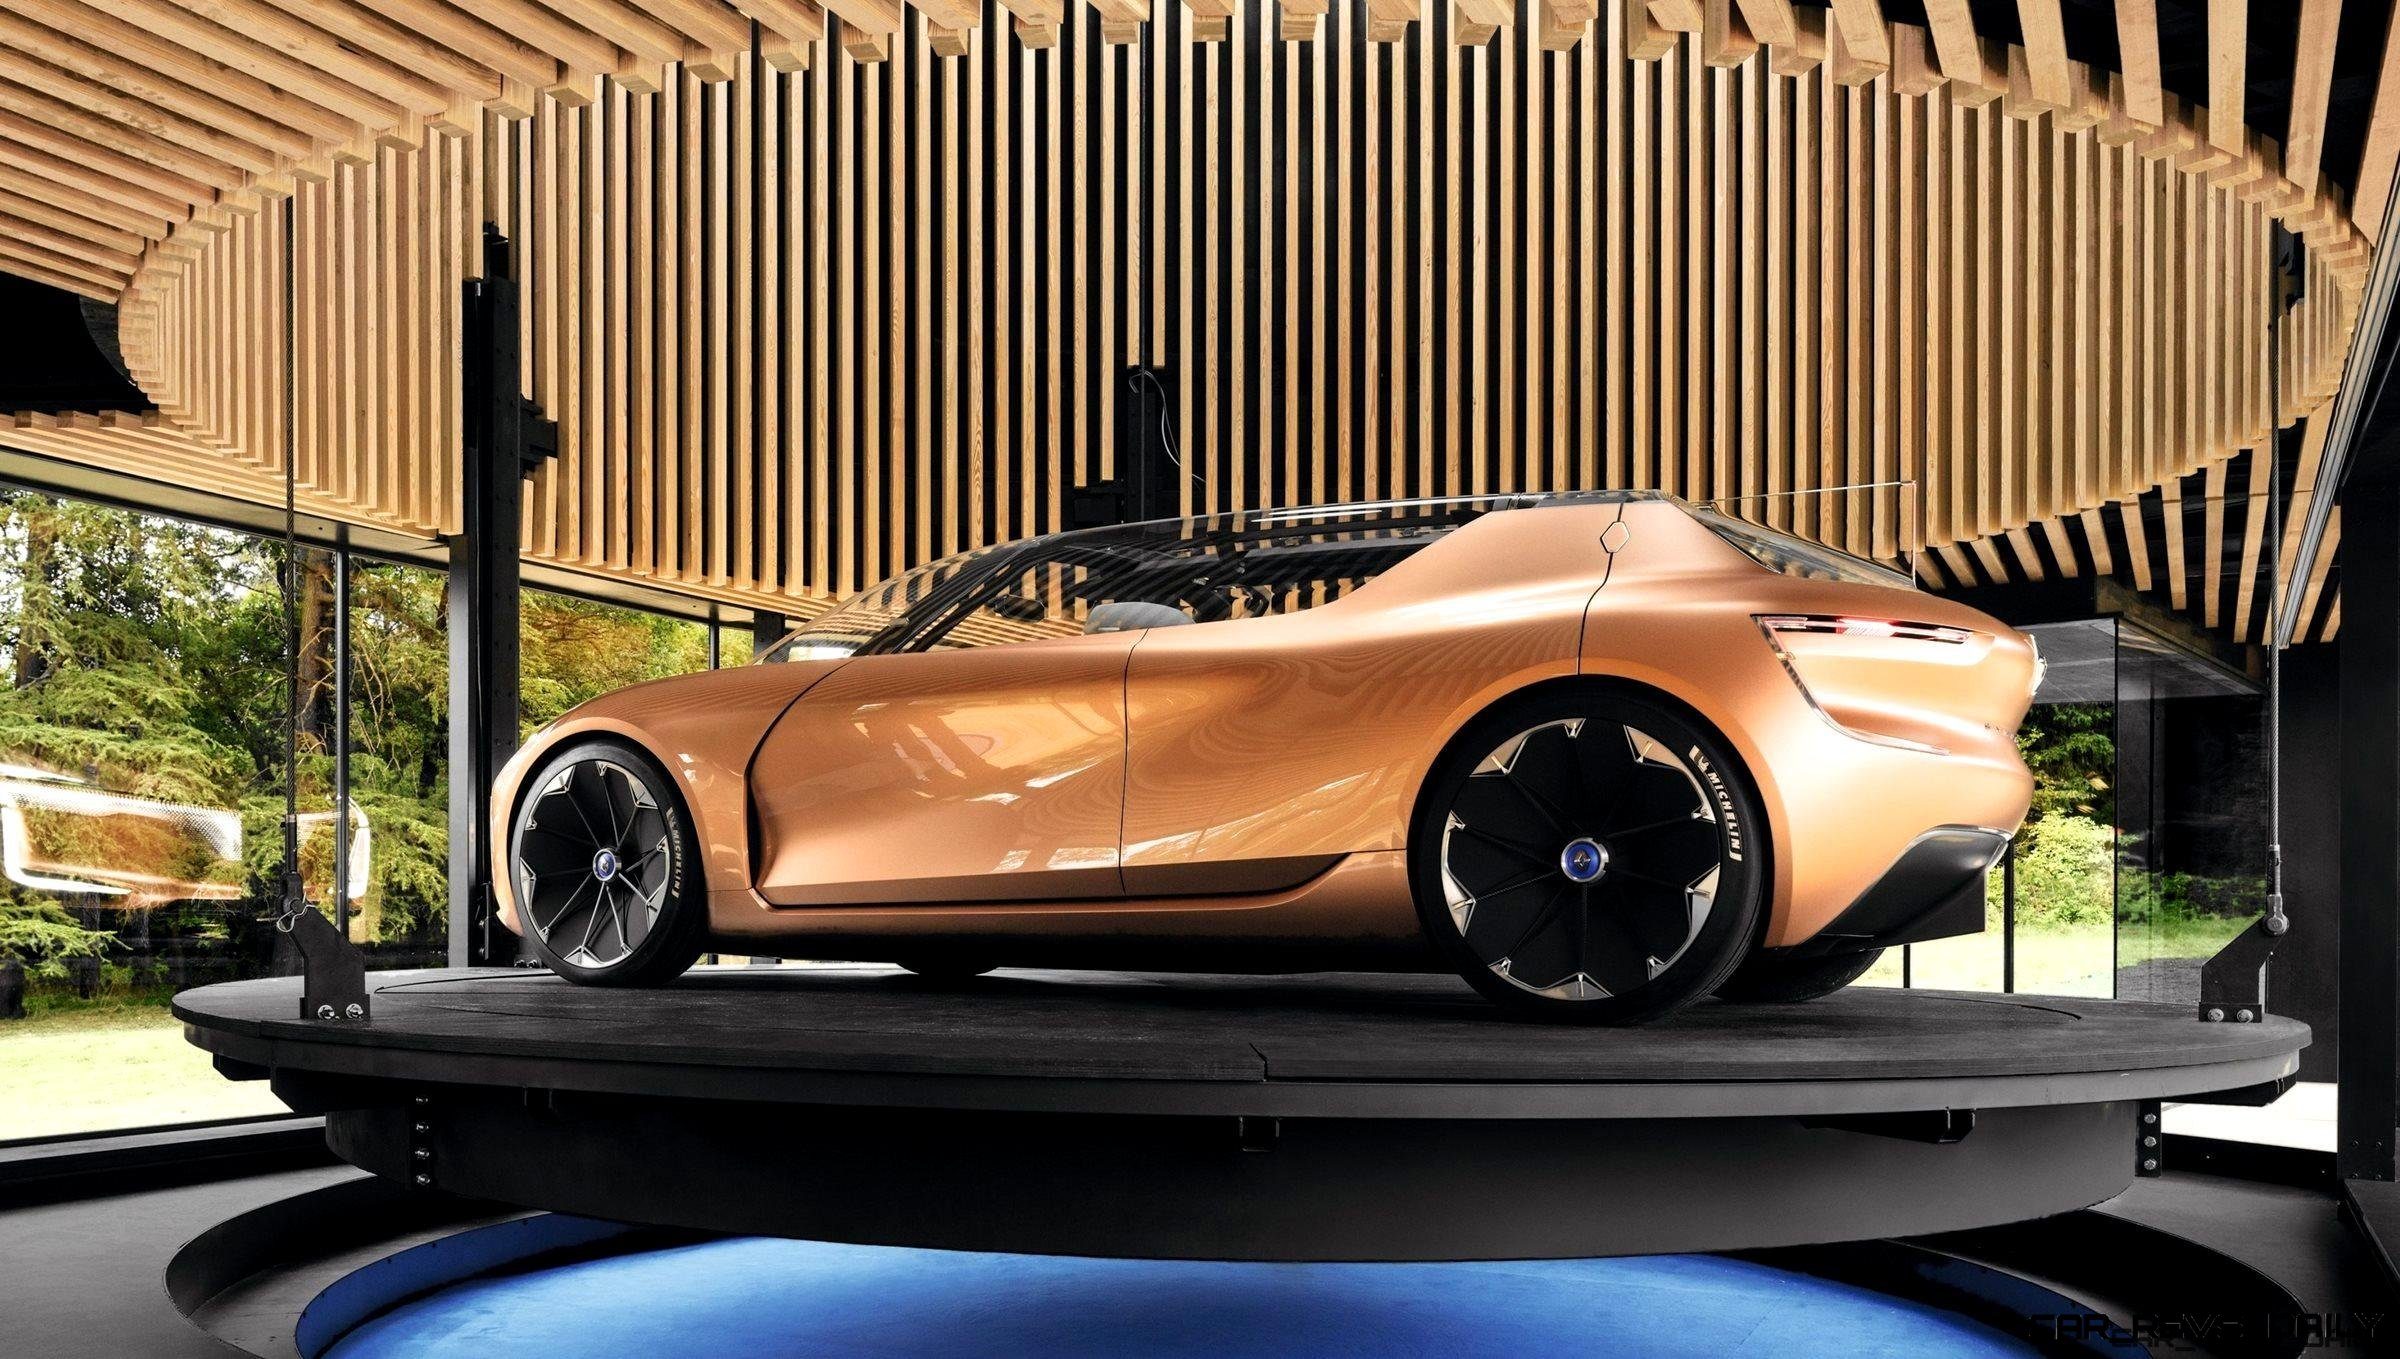 2017 Renault Symbioz Concept Car And House Holistic